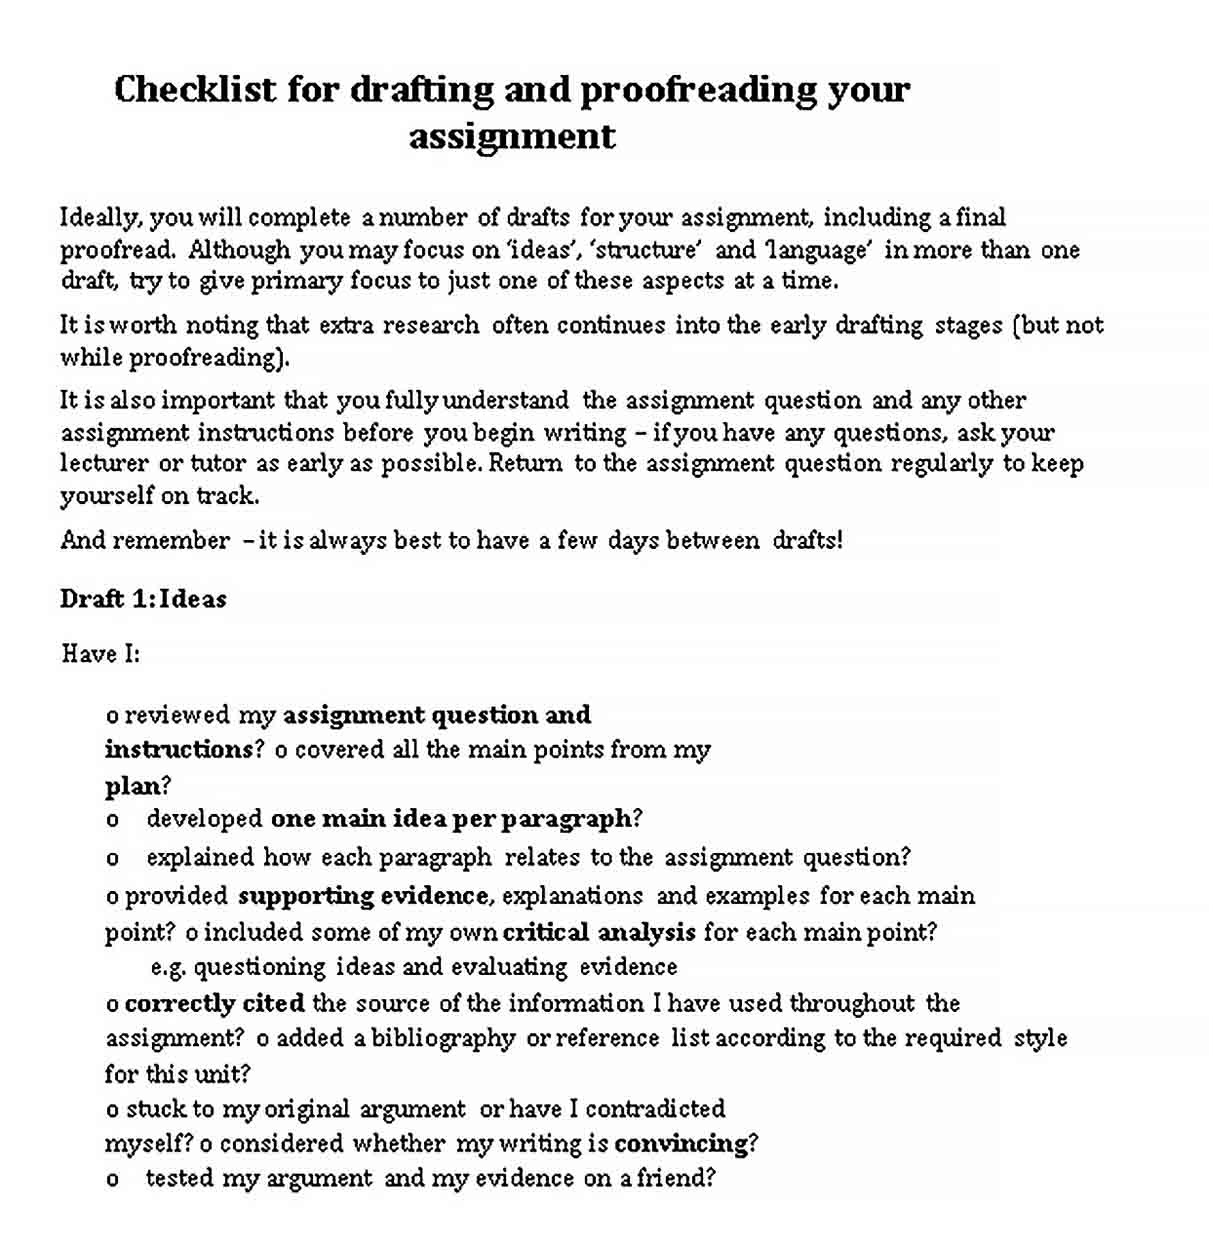 Drafting Checklist Template